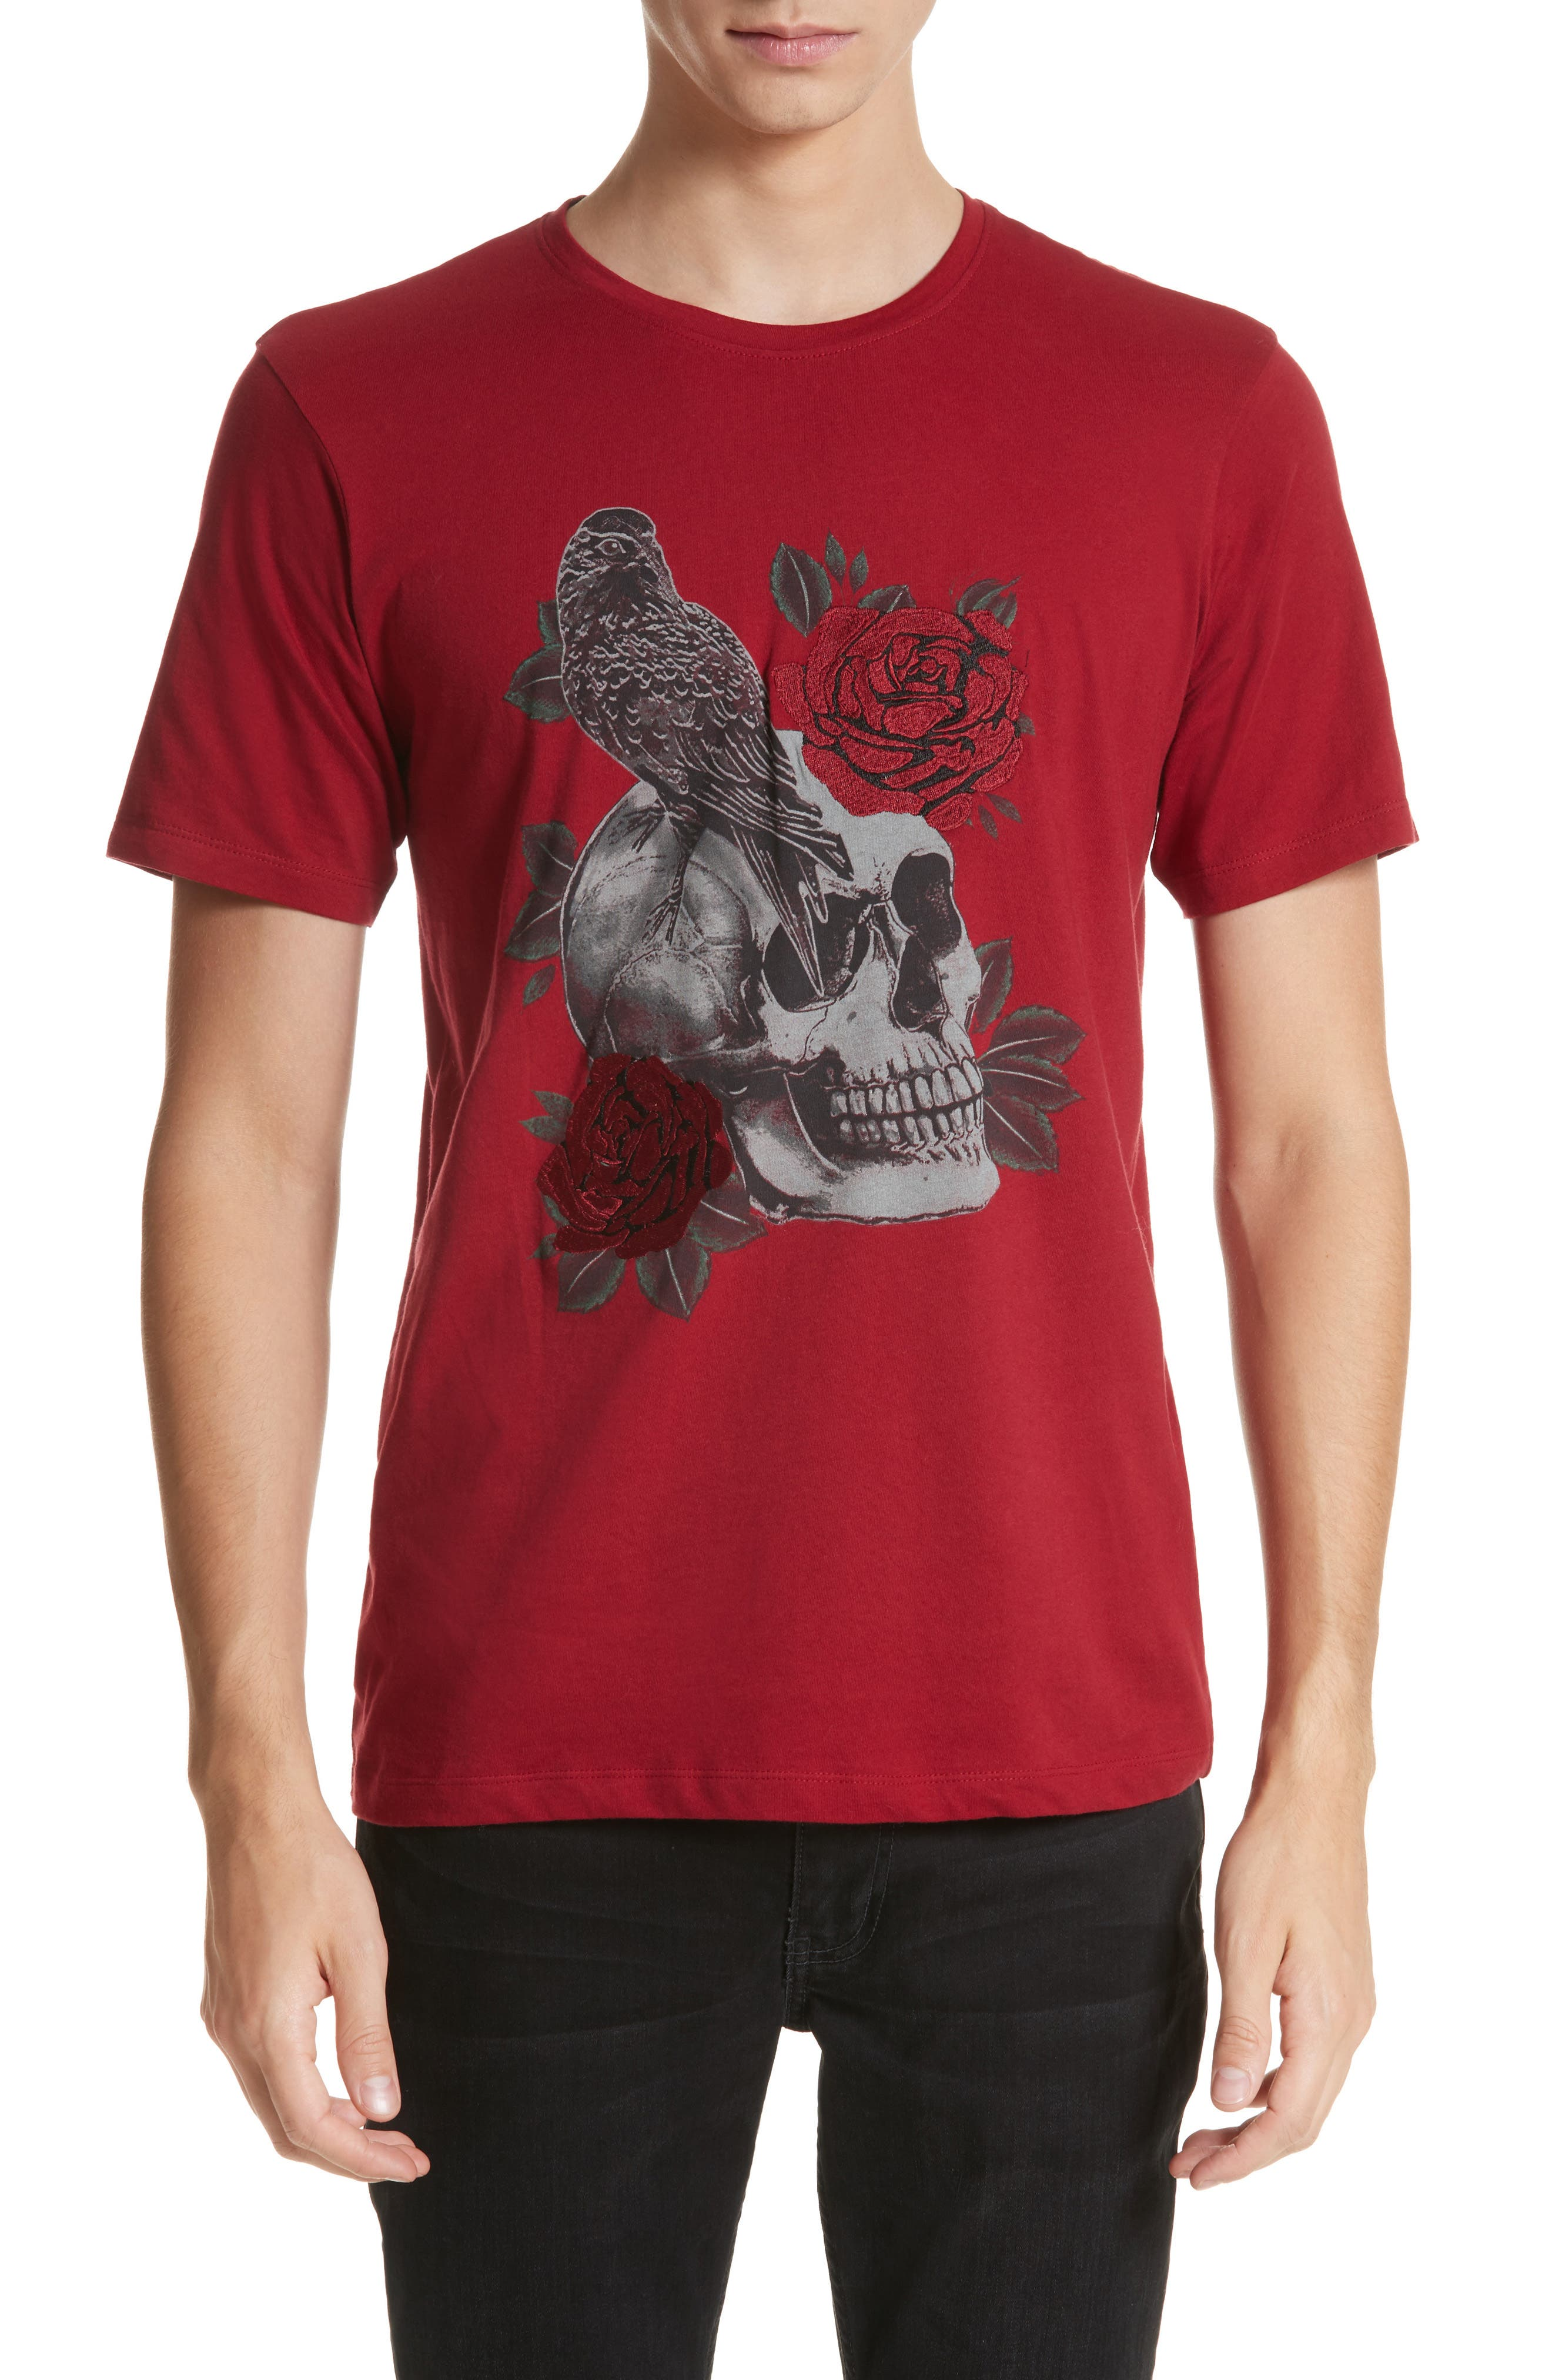 Main Image - The Kooples Embroidered Skull Graphic T-Shirt